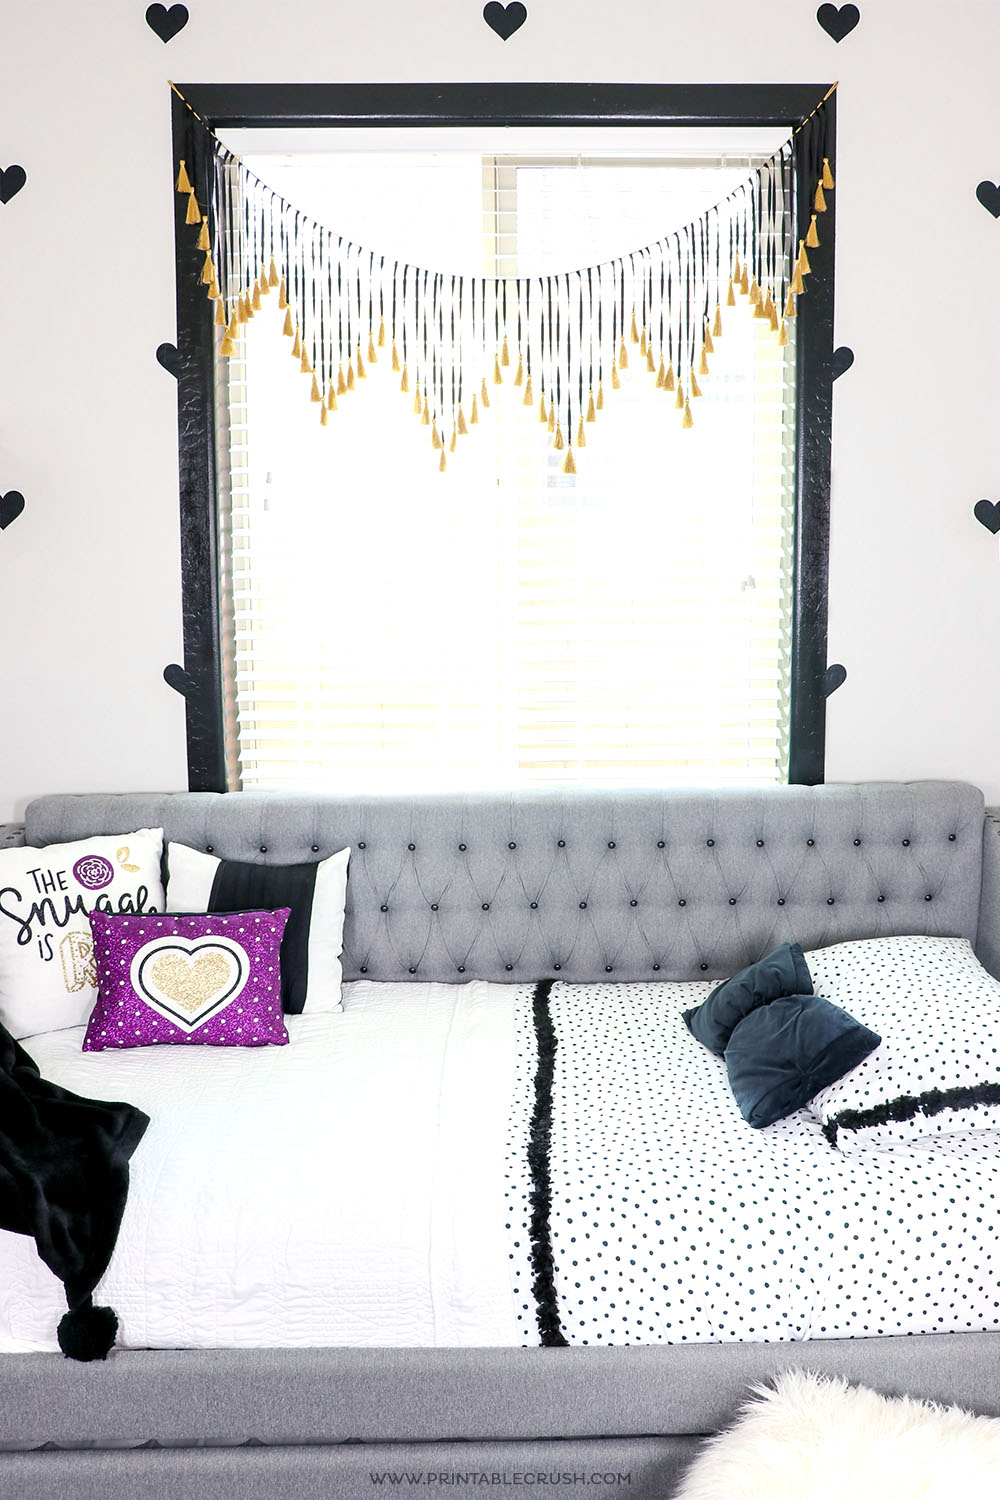 This Easy DIY Faux Heart Wallpaper is SO easy to make with Cricut Vinyl!